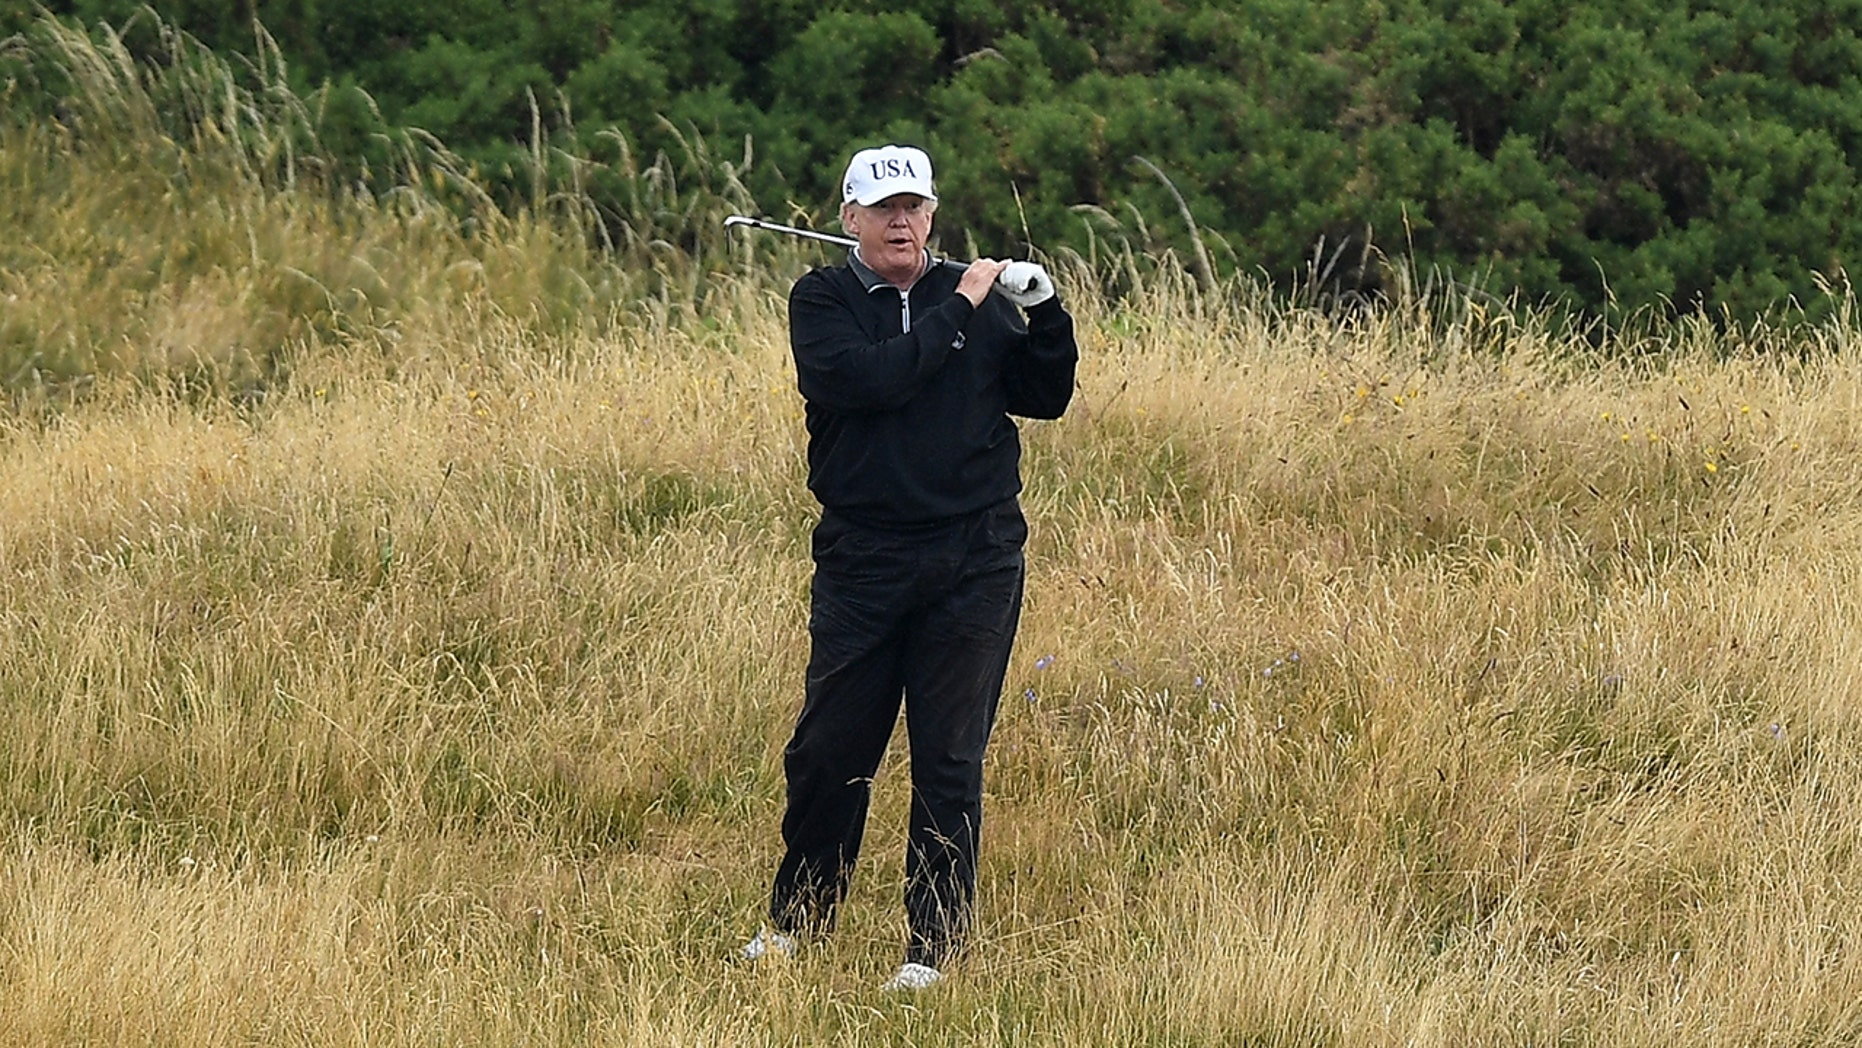 TURNBERRY, SCOTLAND - JULY 15: U.S. President Donald Trump plays a round of golf at Trump Turnberry Luxury Collection Resort during the U.S. President's first official visit to the United Kingdom on July 15, 2018 in Turnberry, Scotland. (Photo by Leon Neal/Getty Images)